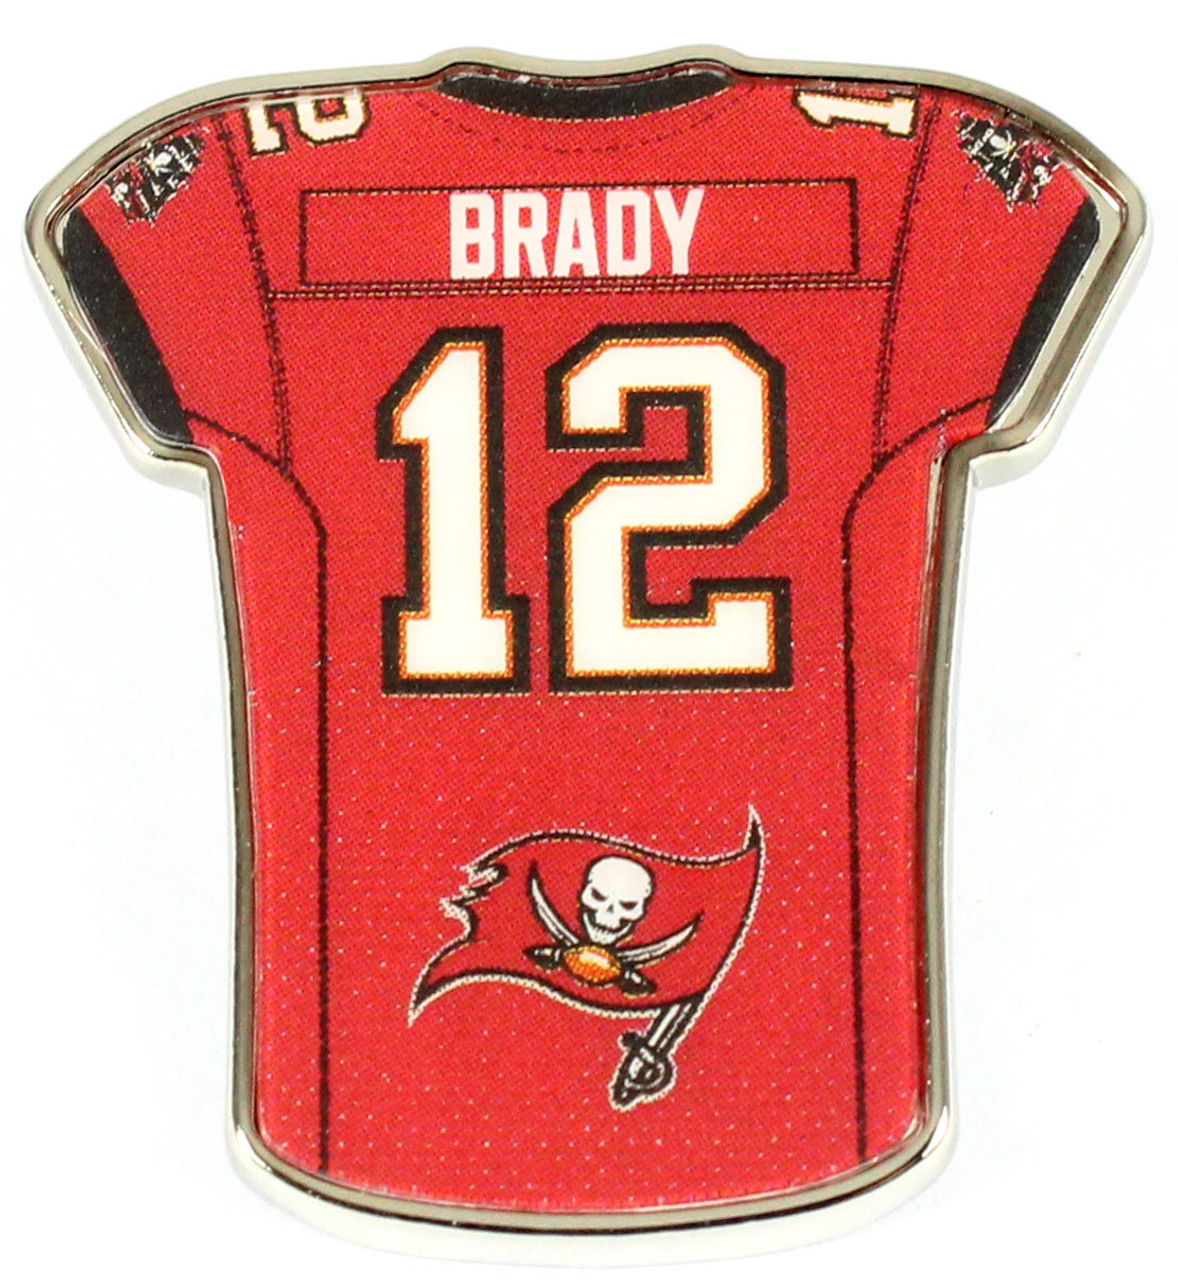 tom brady tampa bay buccaneers jersey pin tom brady tampa bay buccaneers jersey pin